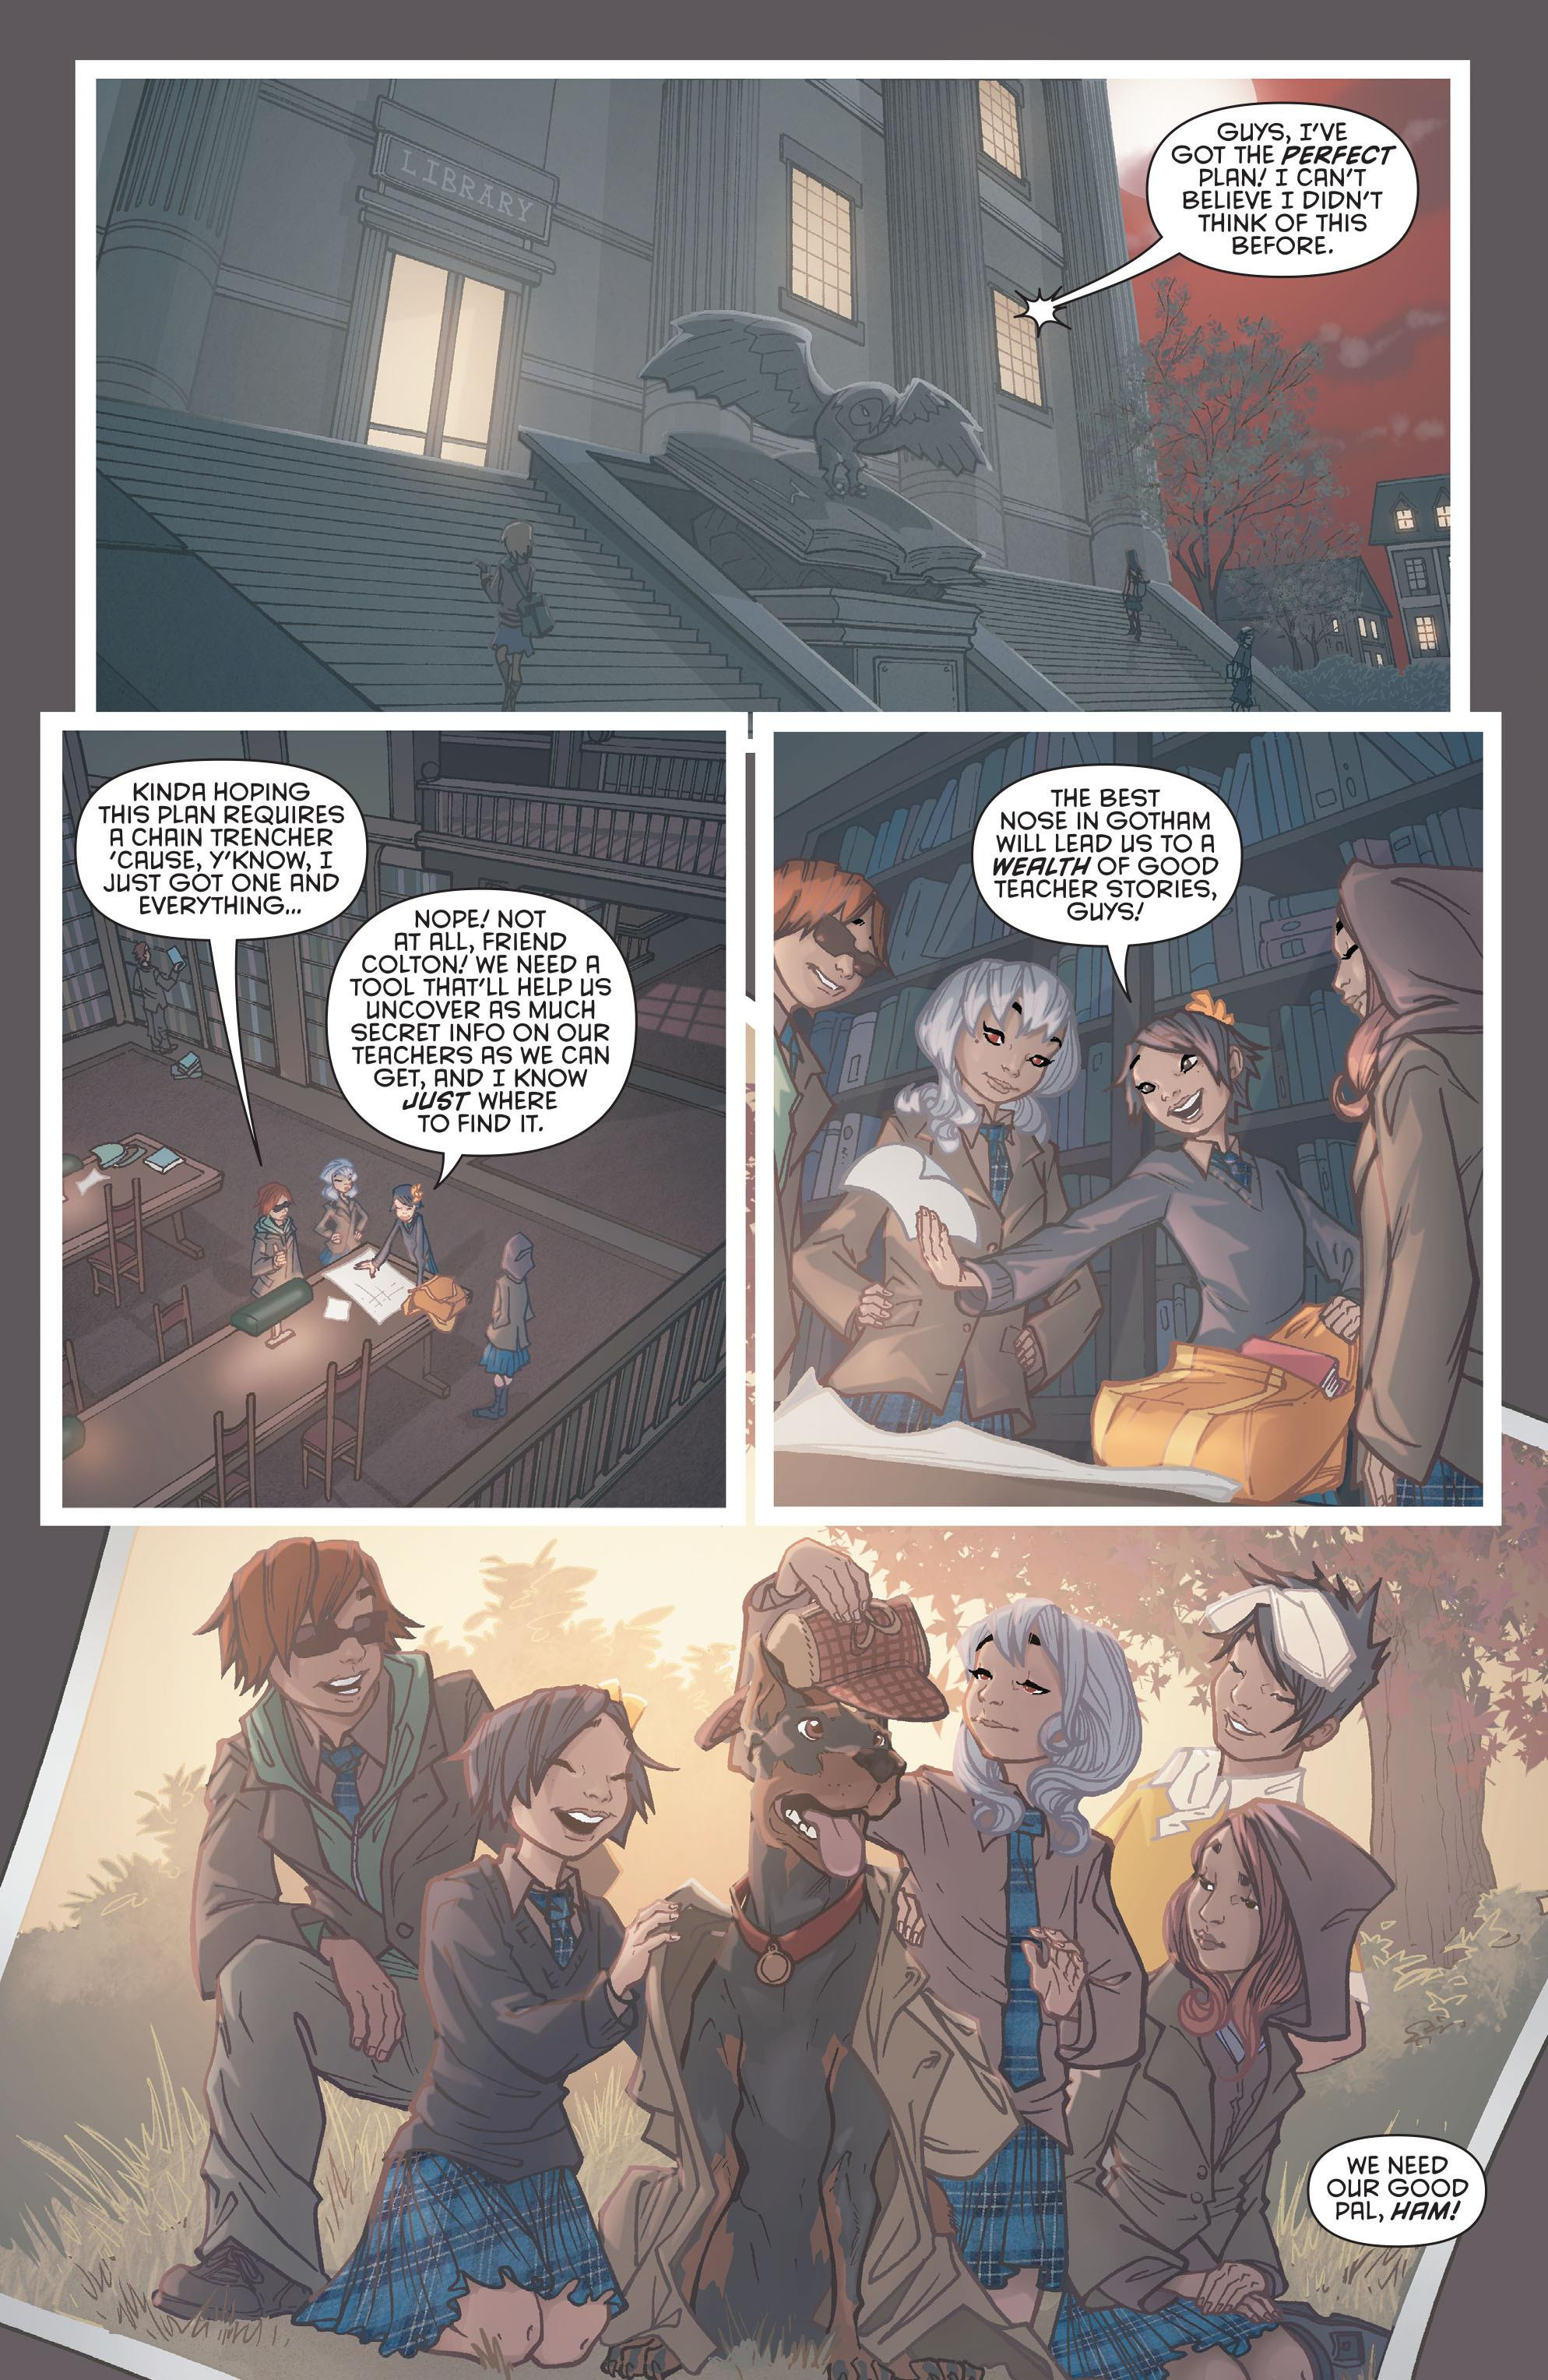 Gotham Academy Yearbook review